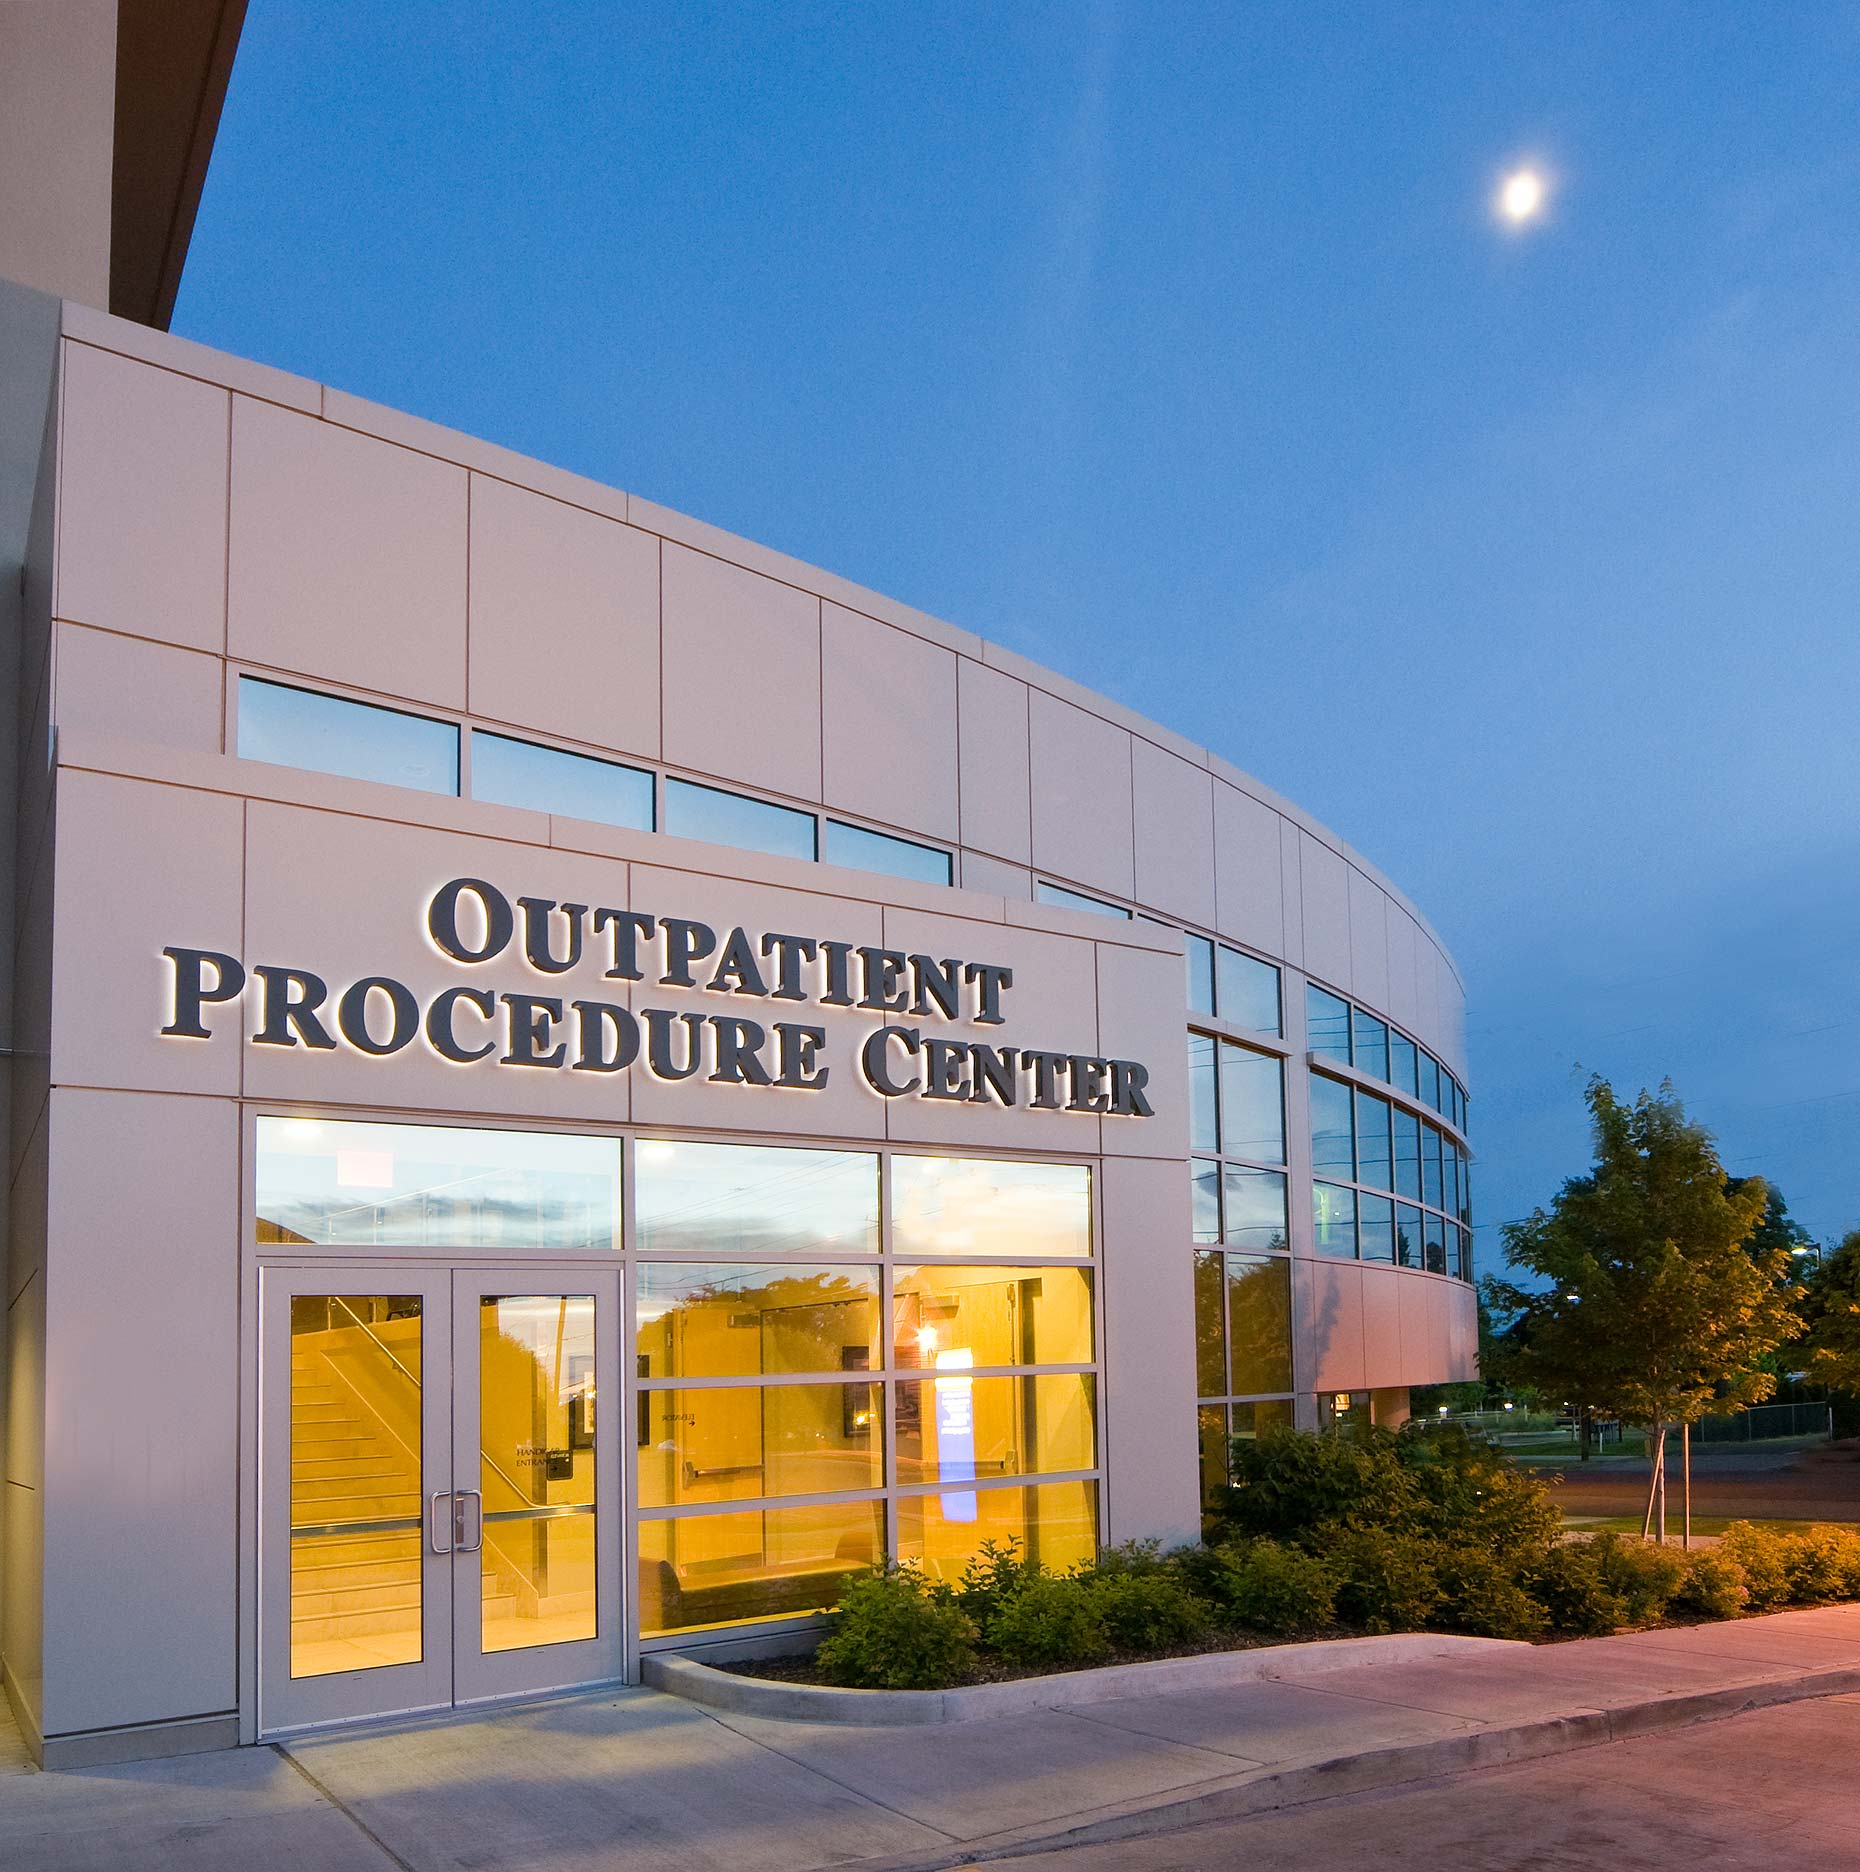 Outpatient Procedure Center